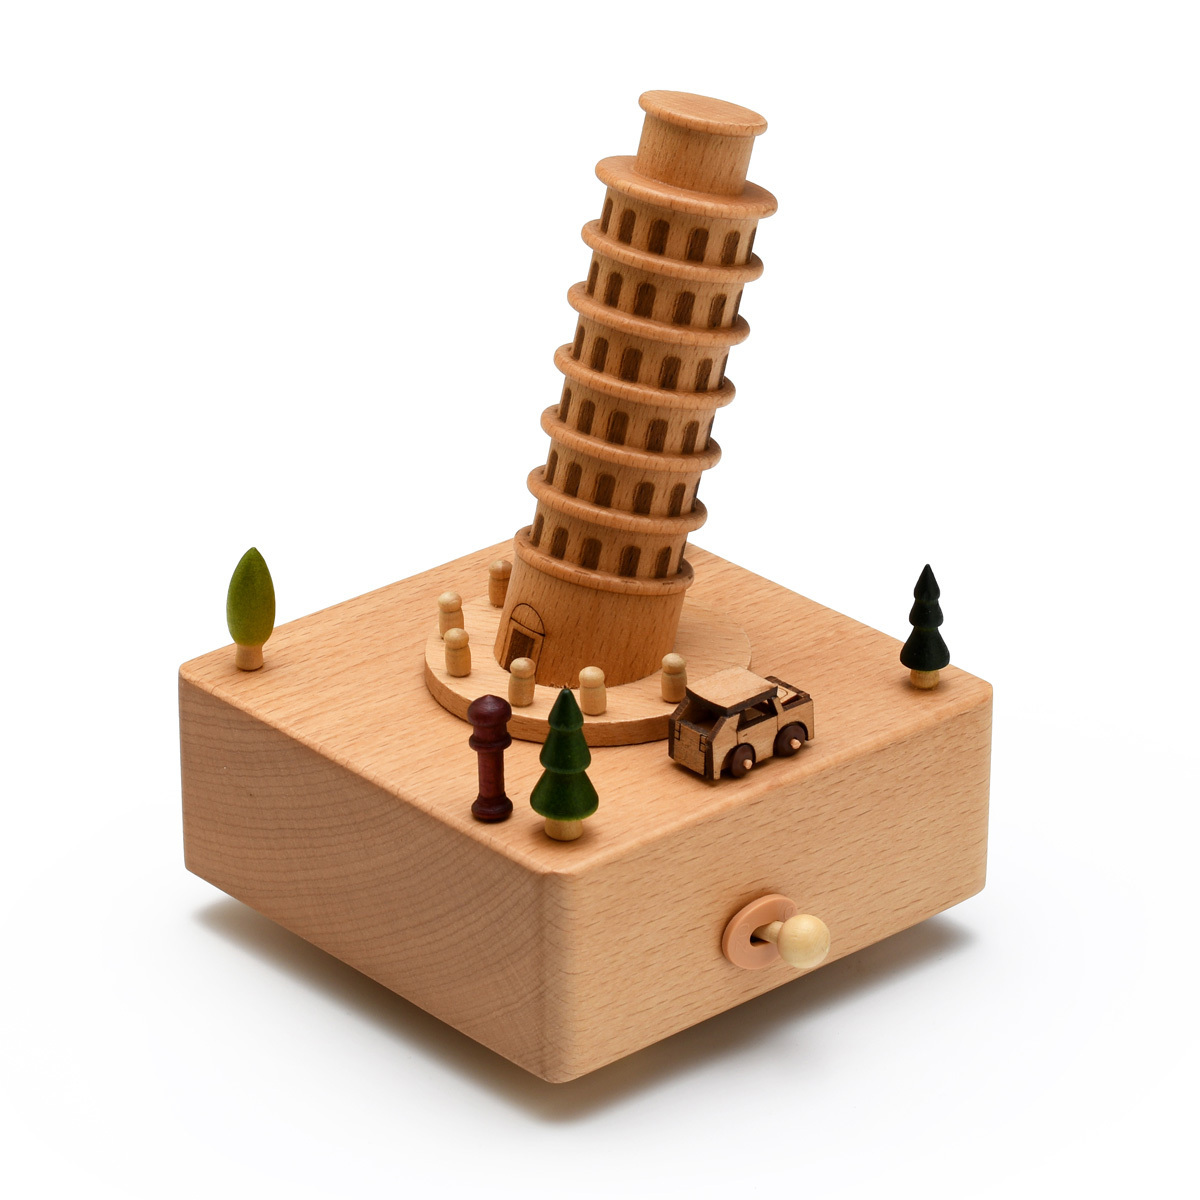 Animated 18 Note Musical Wooden Leaning Tower of Pisa Keepsake